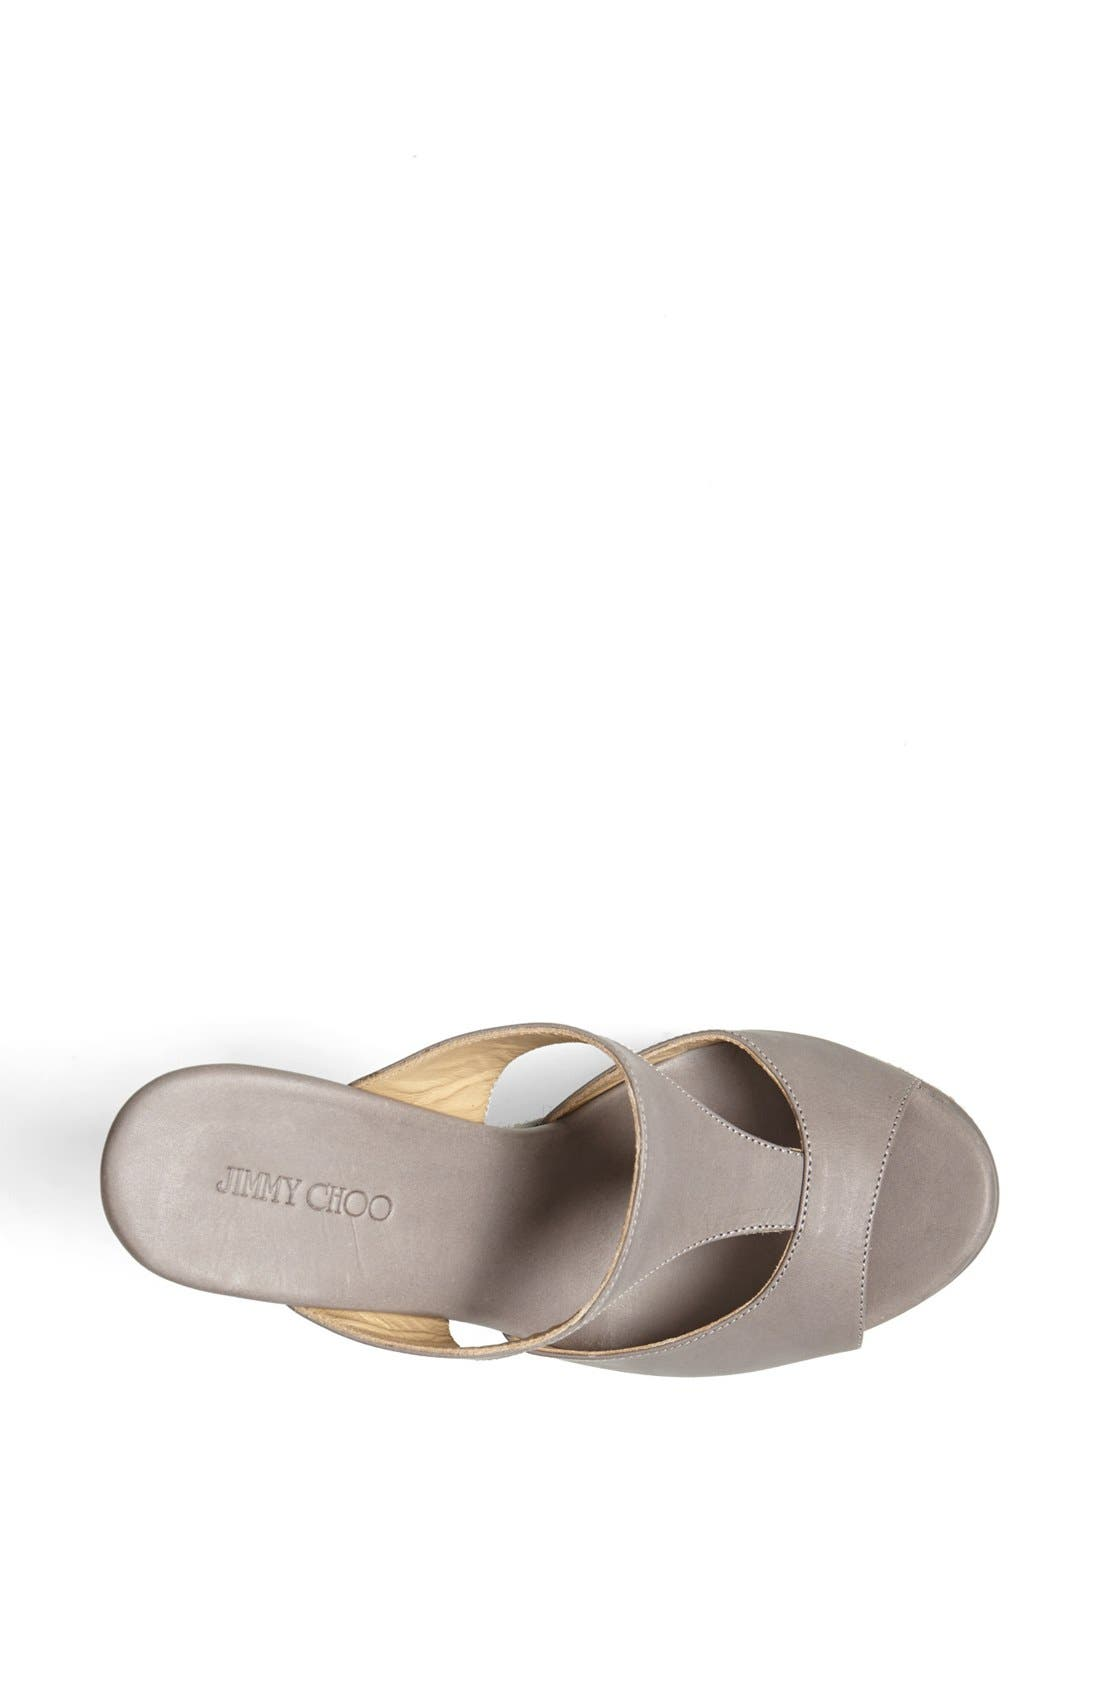 Alternate Image 3  - Jimmy Choo 'Pledge' Espadrille Sandal